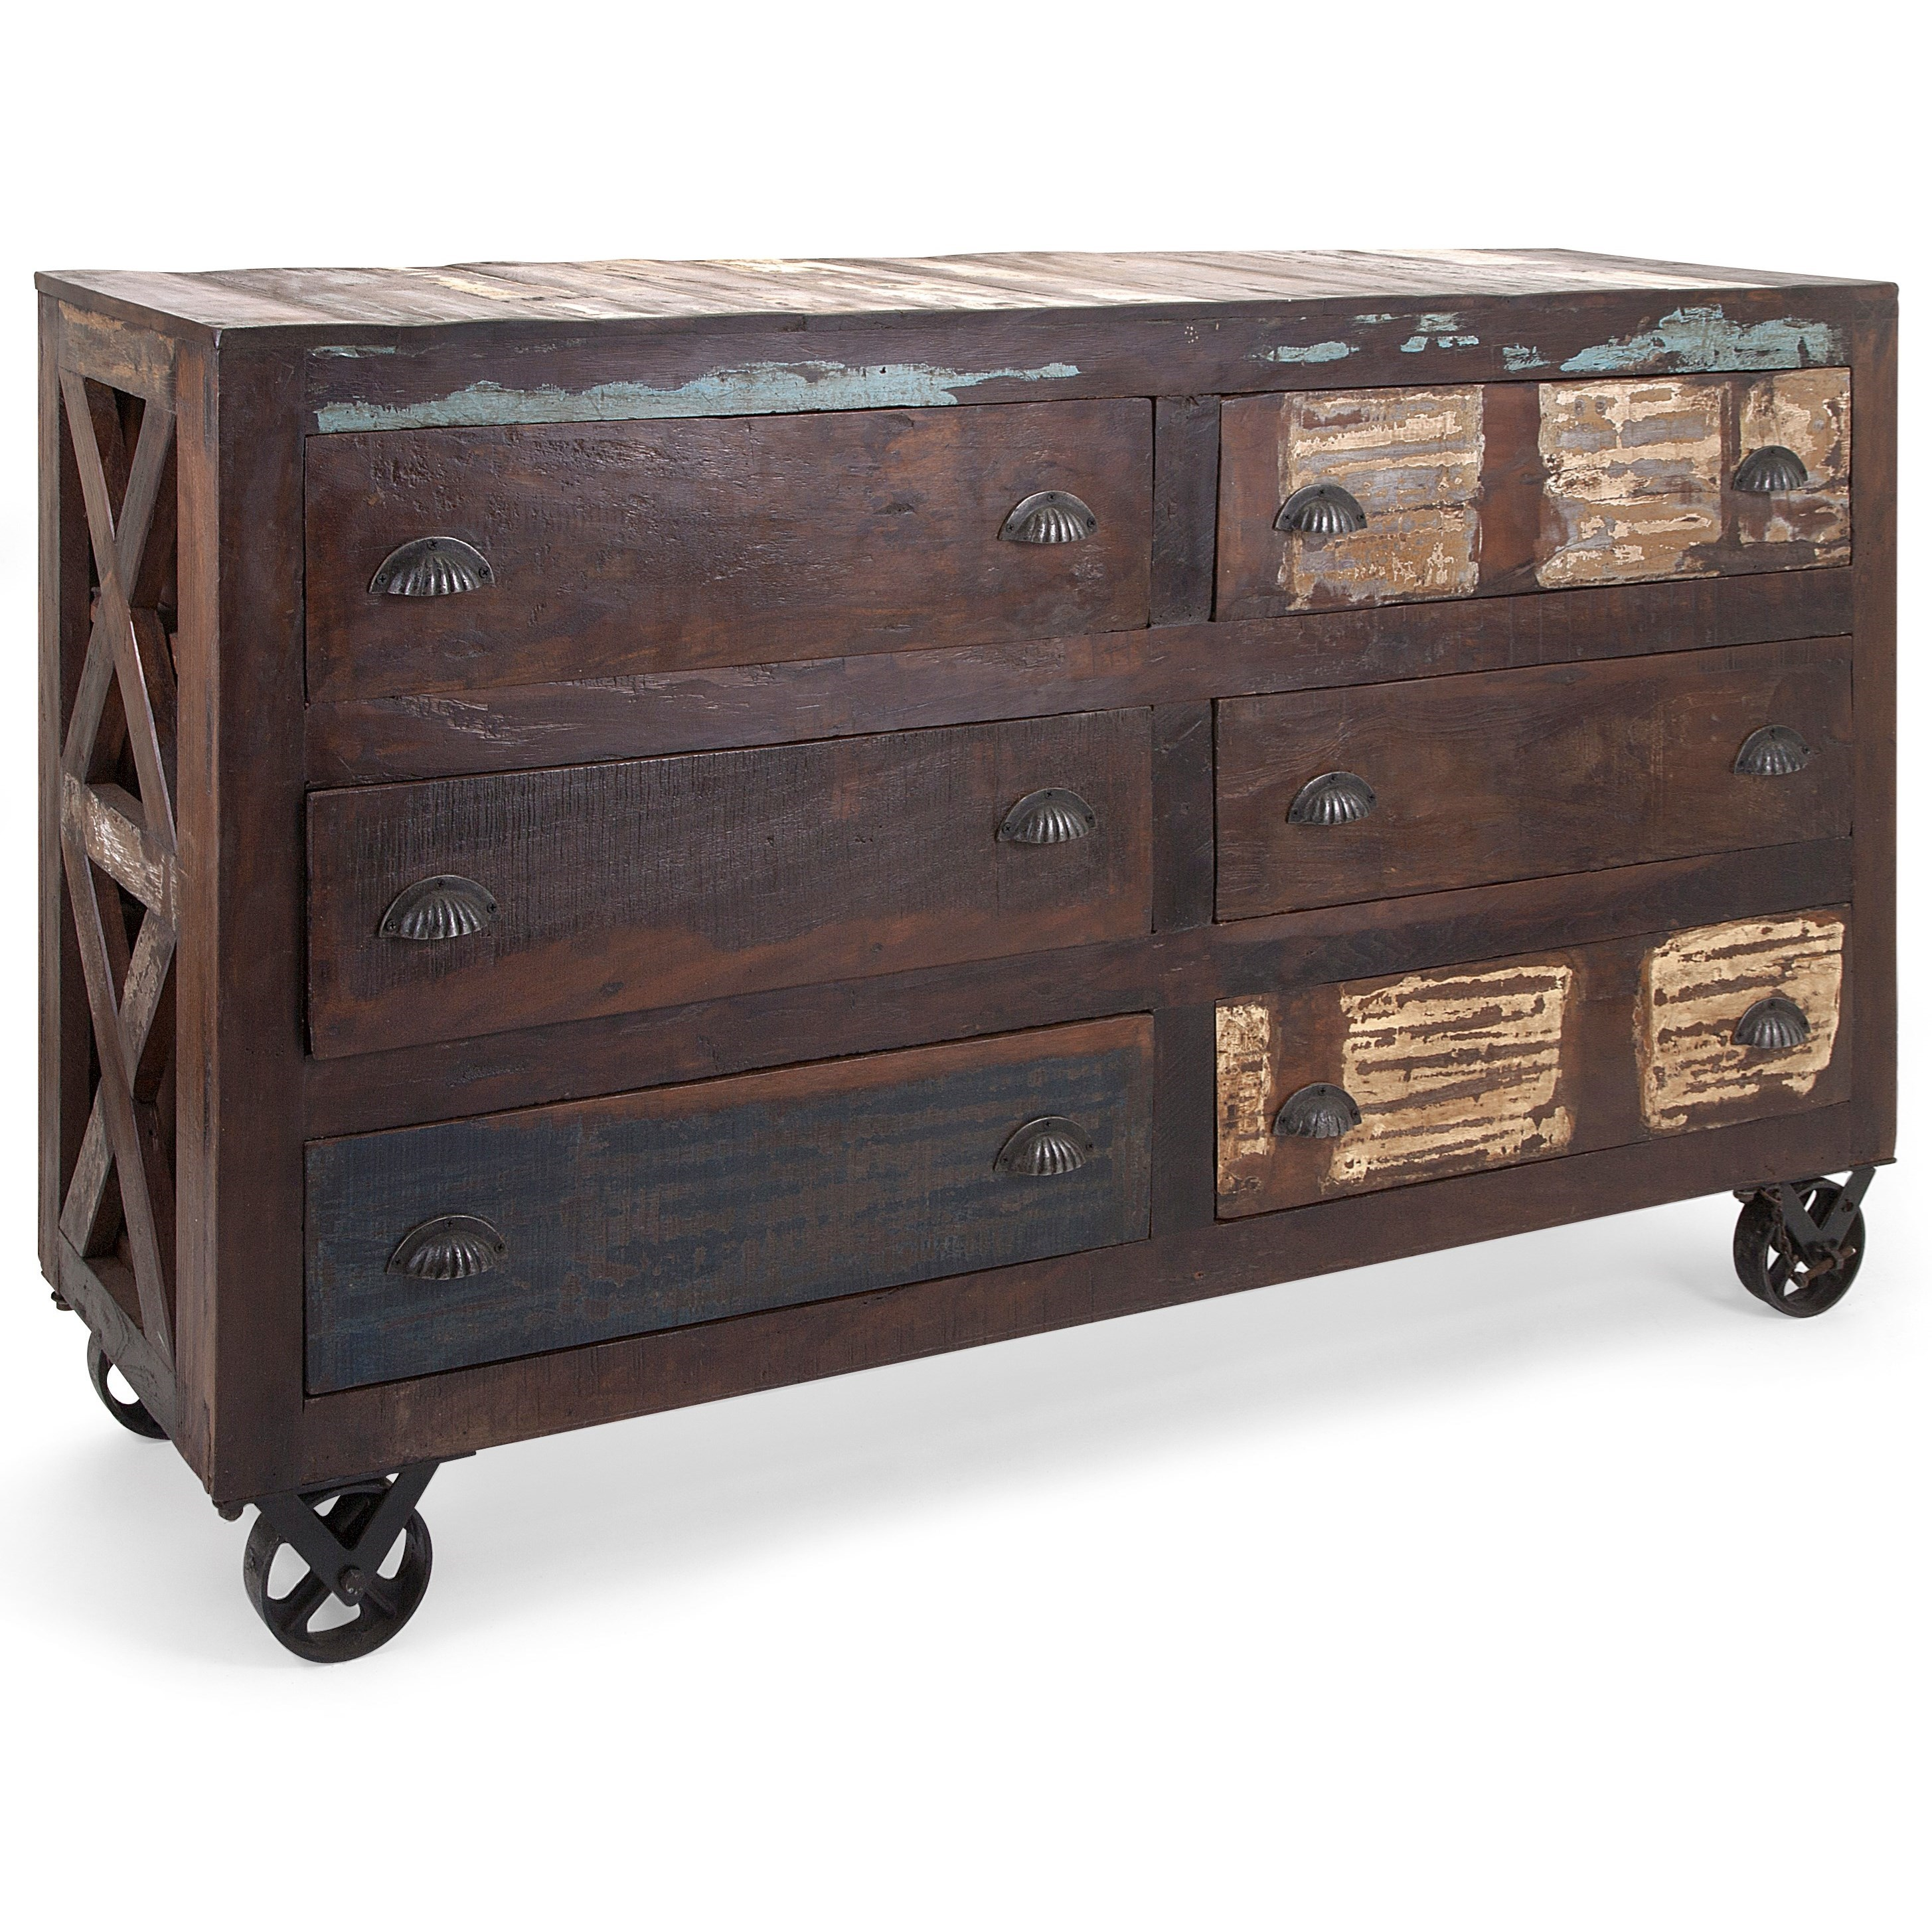 Accent Tables and Cabinets Carron Reclaimed Wood Buffet by IMAX Worldwide Home at Alison Craig Home Furnishings